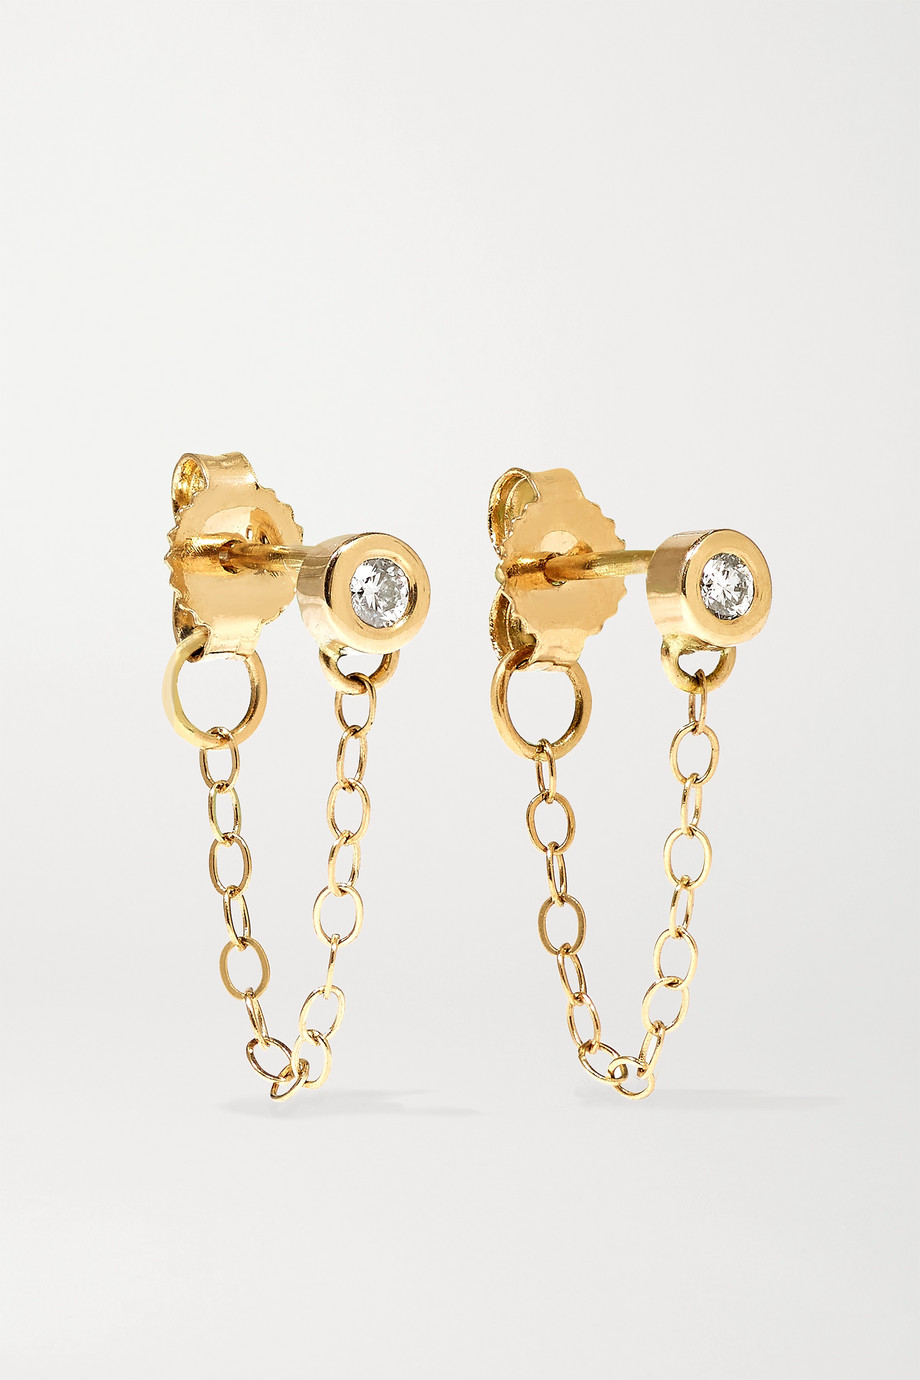 Melissa Joy Manning 14-karat gold diamond earrings